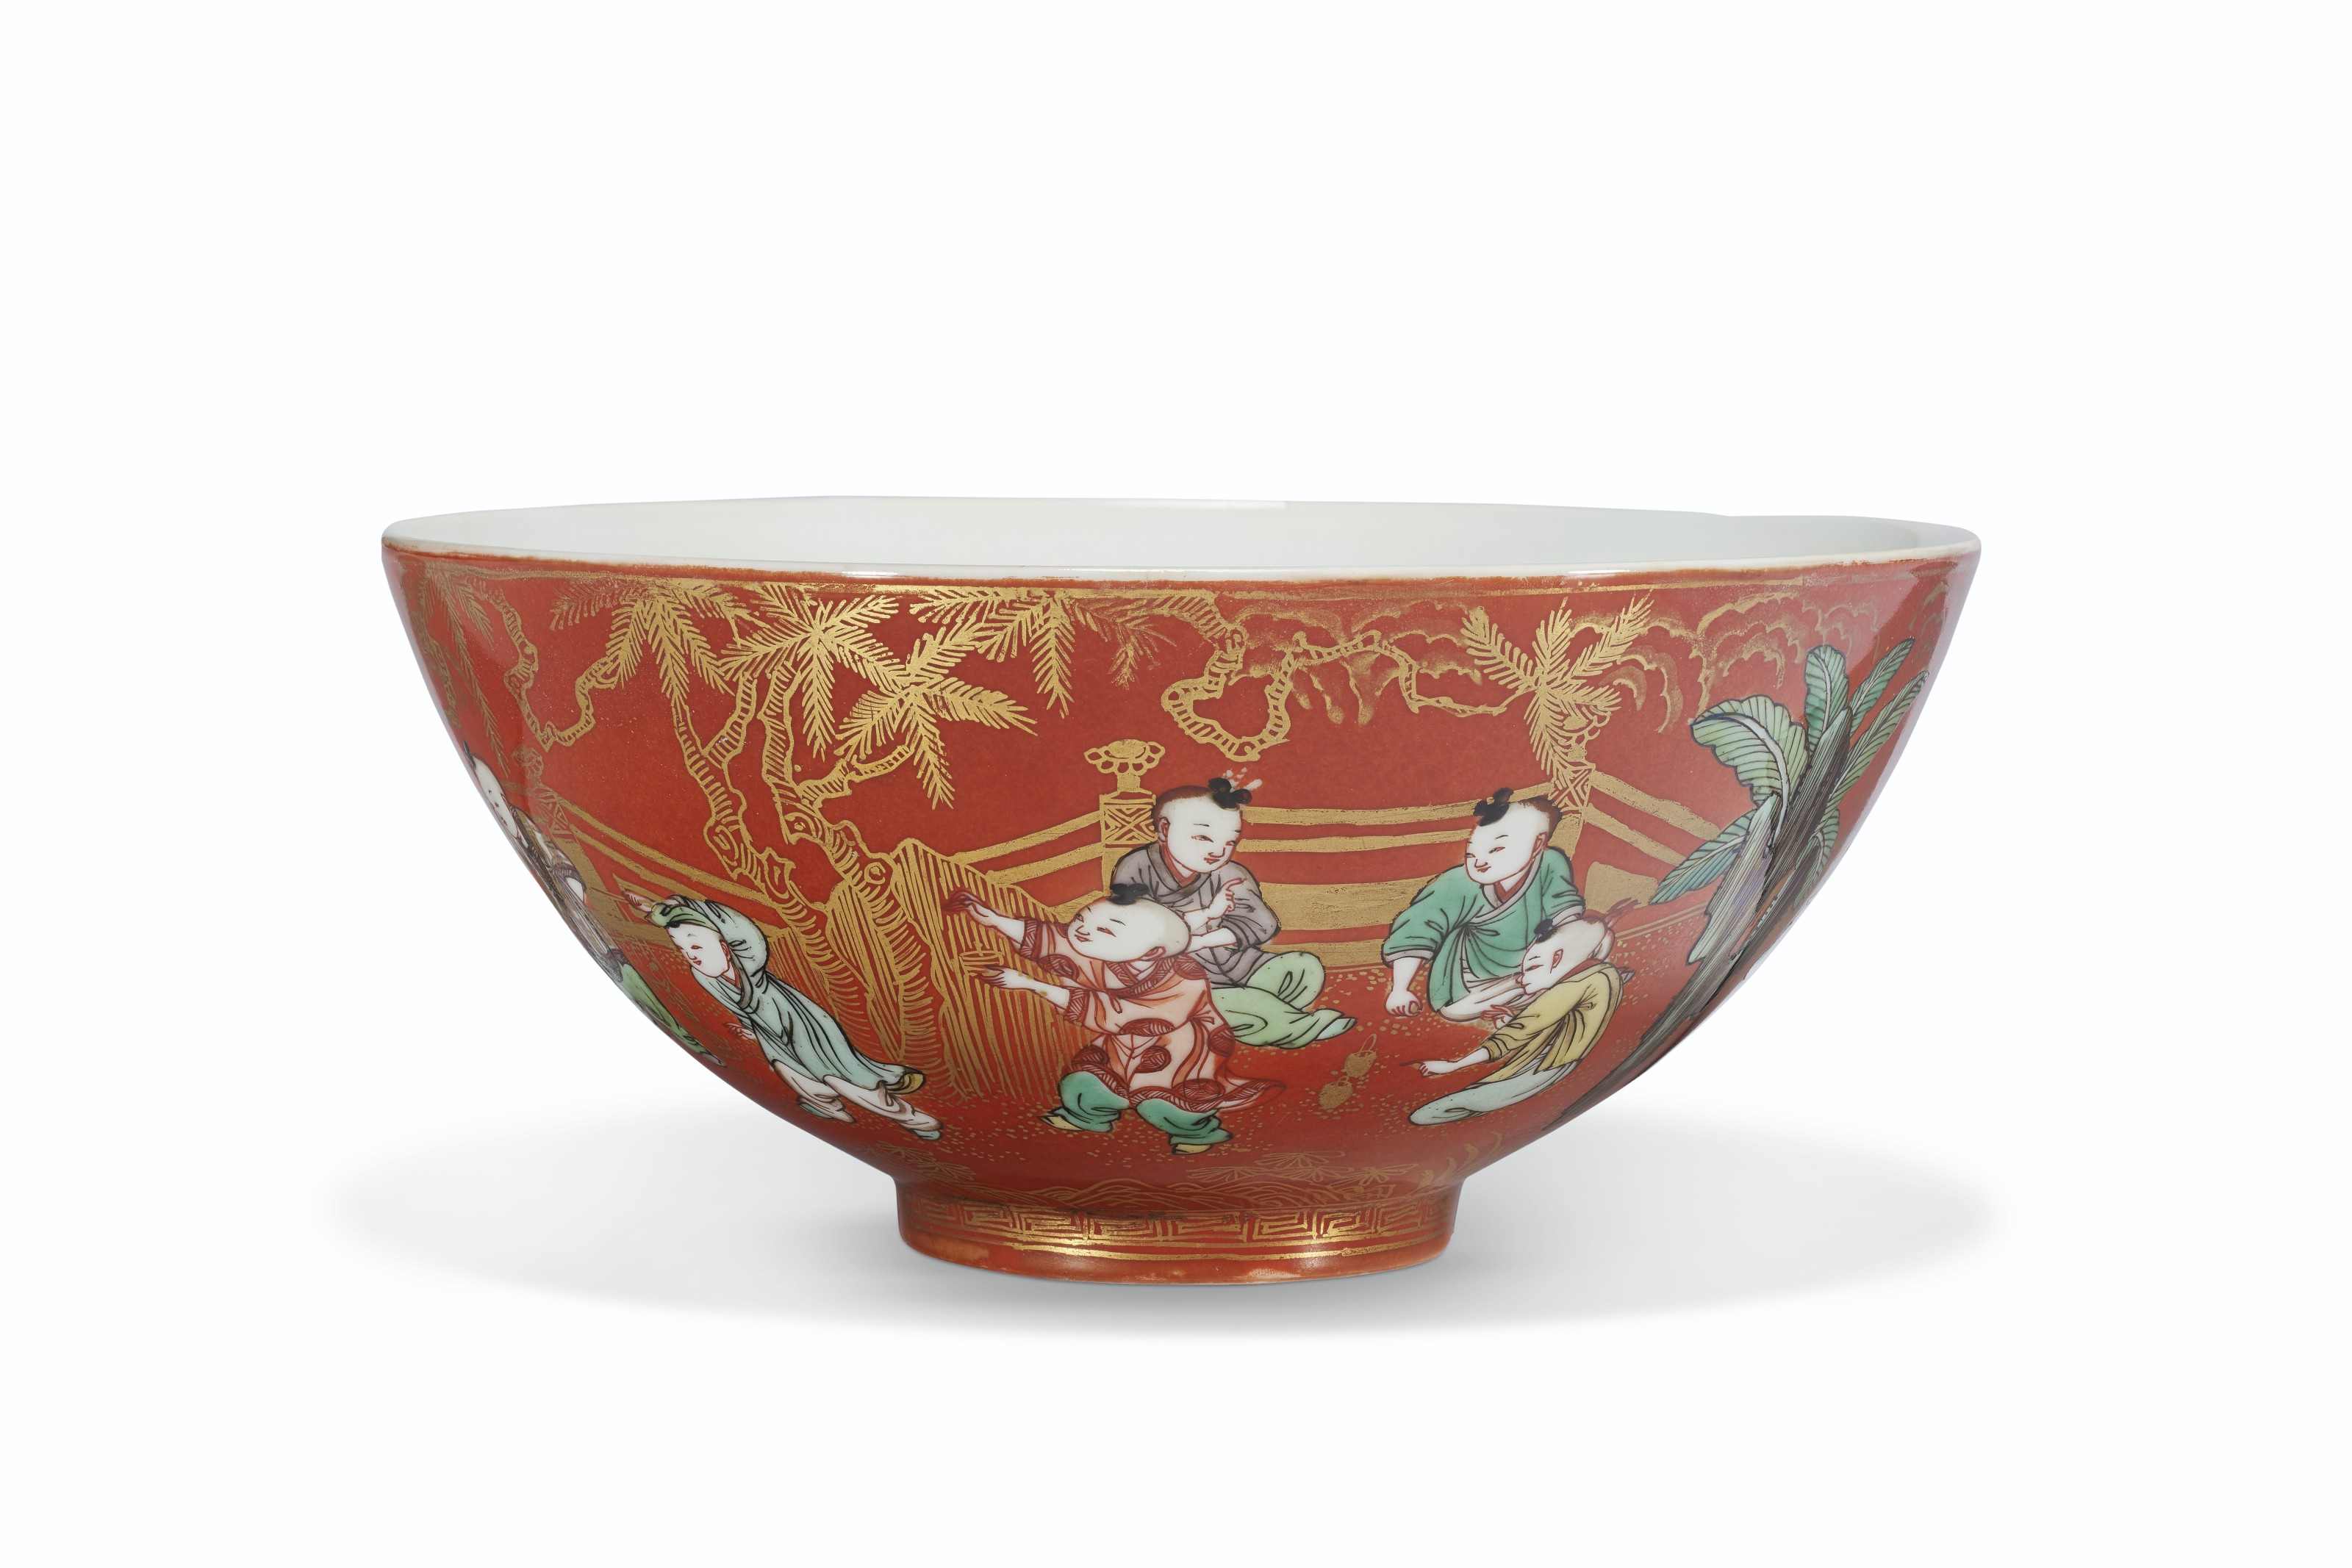 A VERY RARE CORAL-GROUND FAMILLE VERTE 'BOYS' BOWL